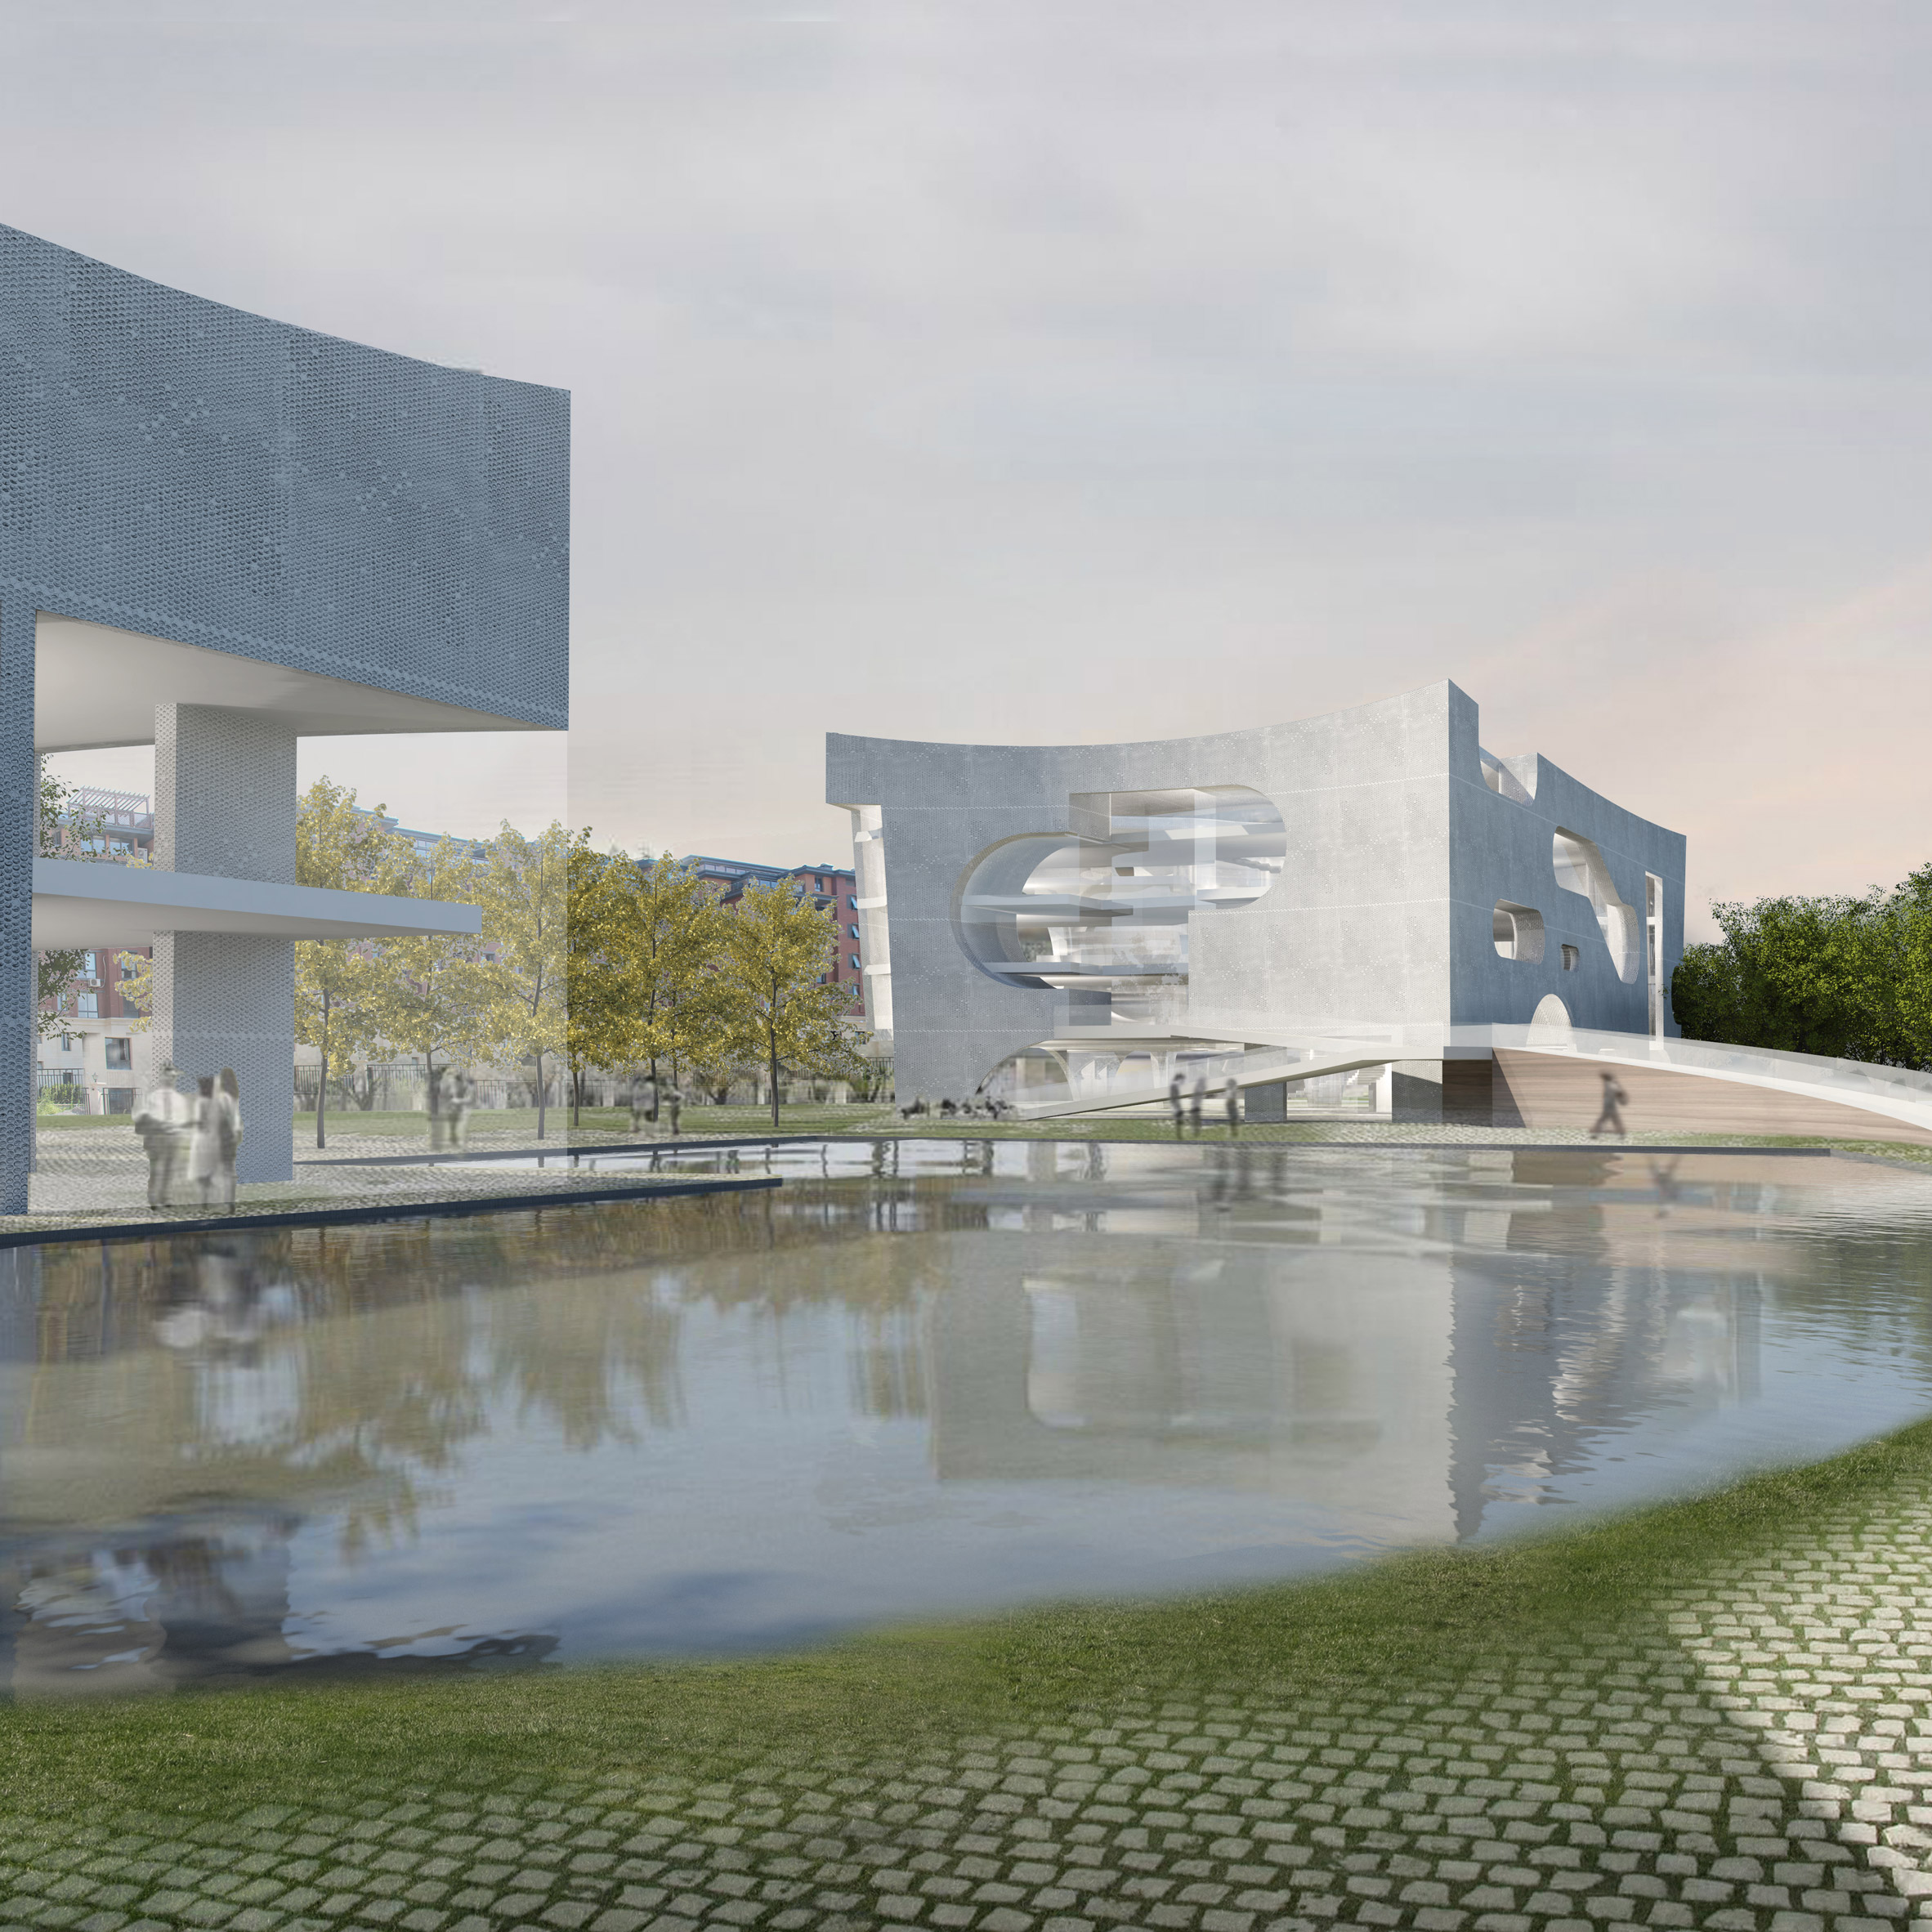 Steven holl 39 s curvy roofed addition to houston arts museum for Home holl